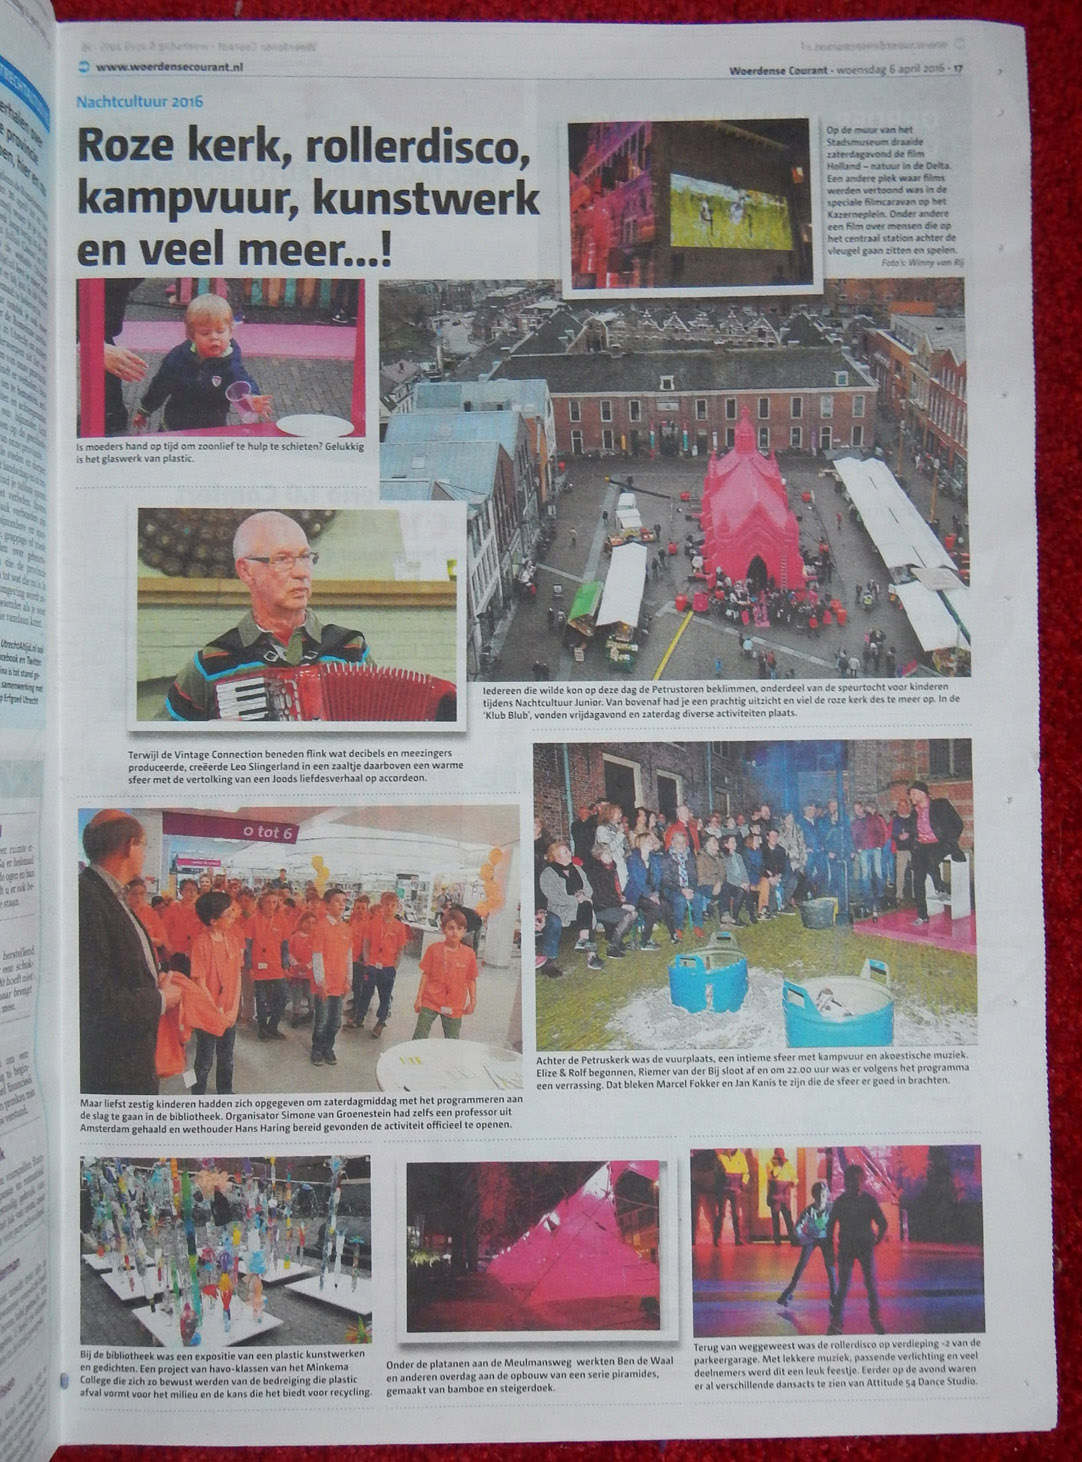 woerdense-courant-2016-04-06-1094-1082x1462